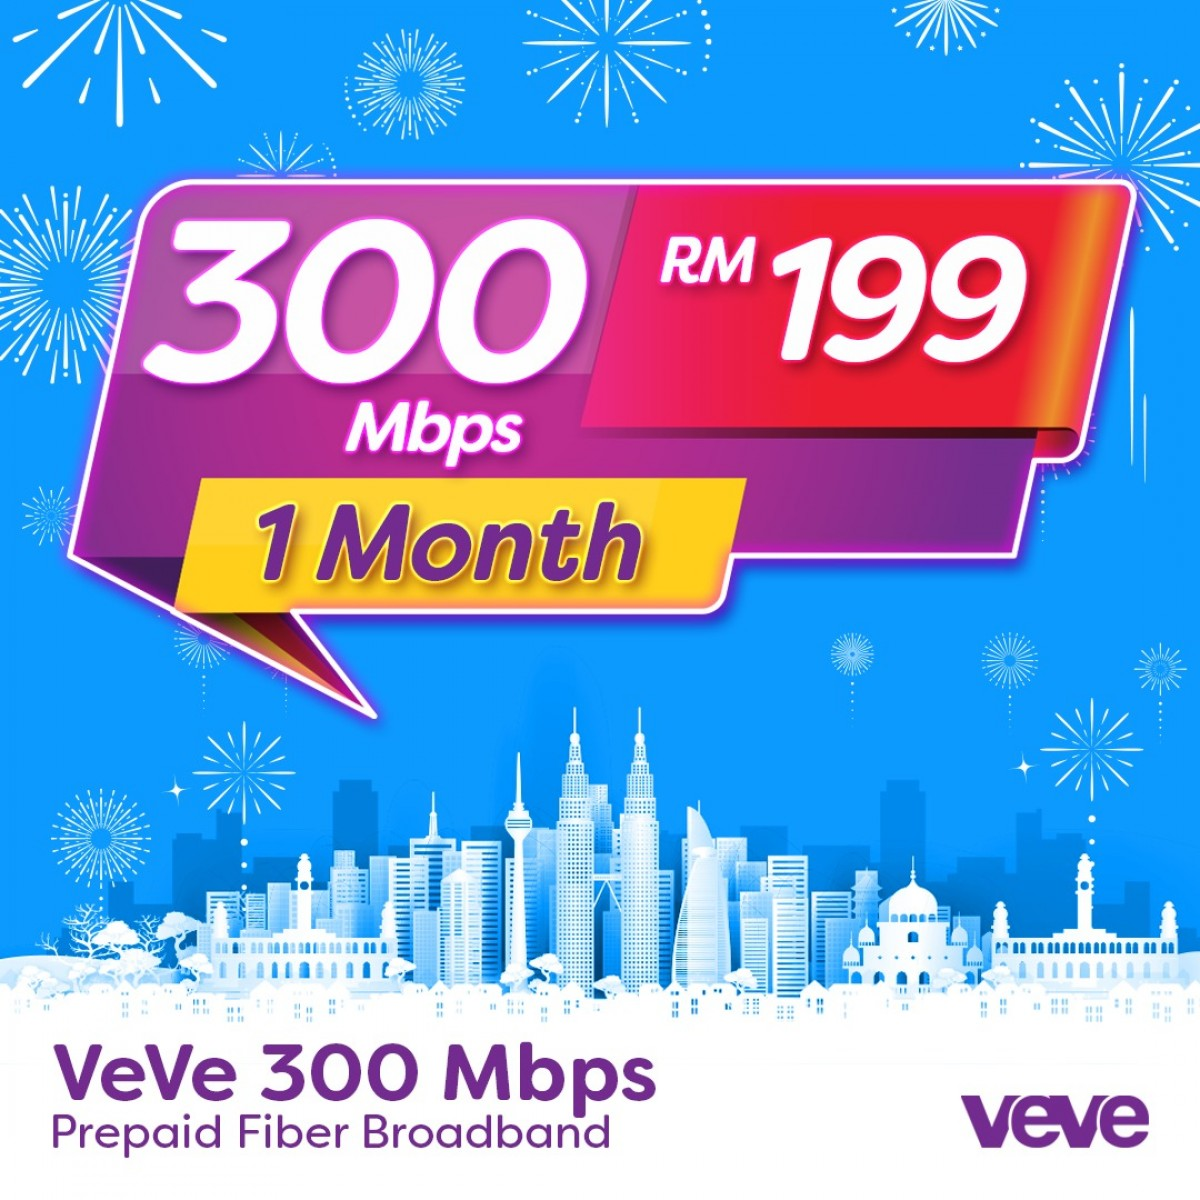 PROMO VEVE 300Mbps New User + Free Installation Package - VEVE